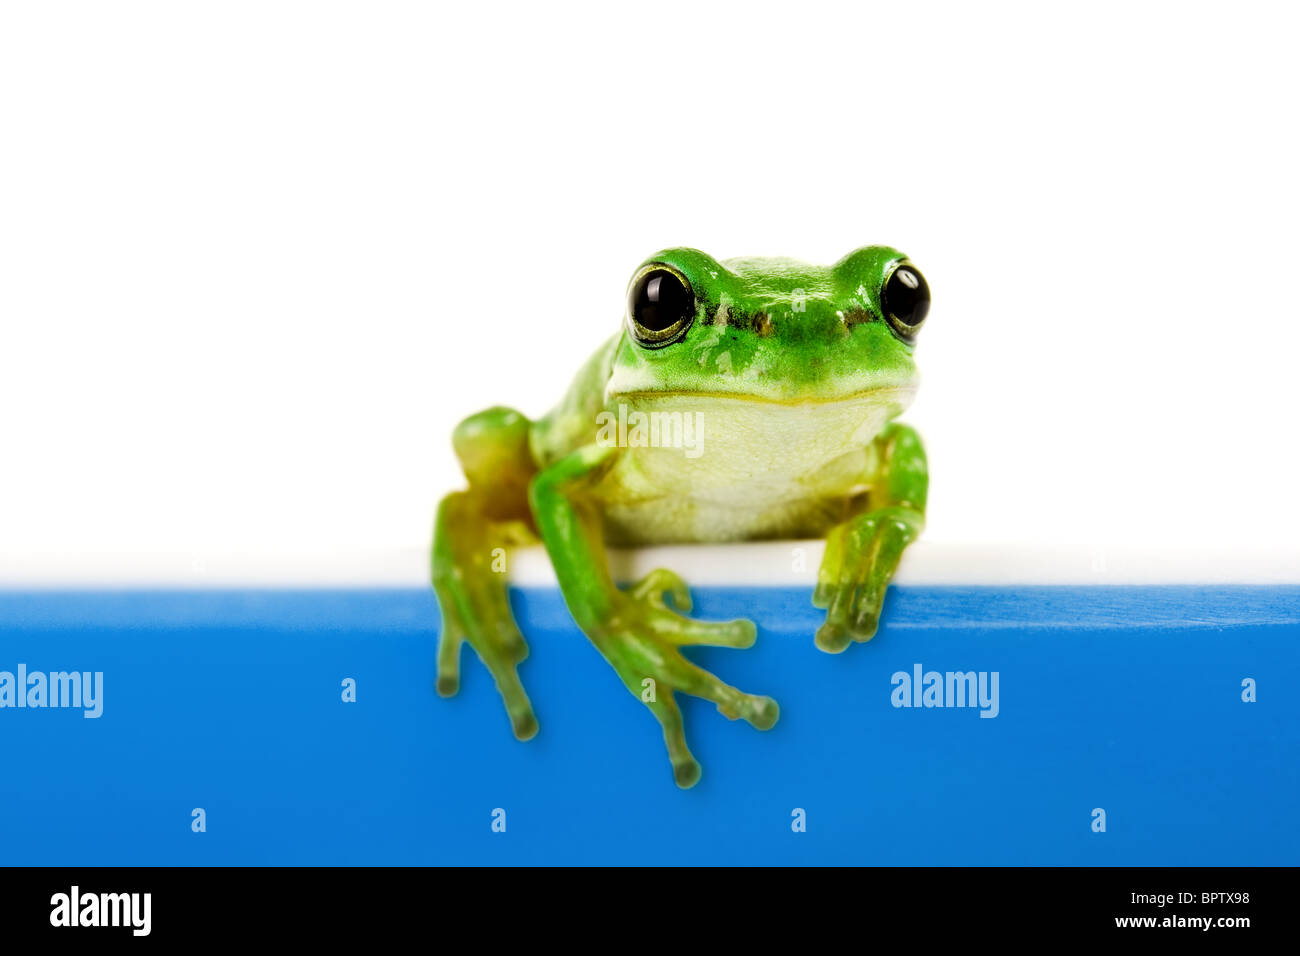 Green frog looking out of blue cooking pot - Stock Image